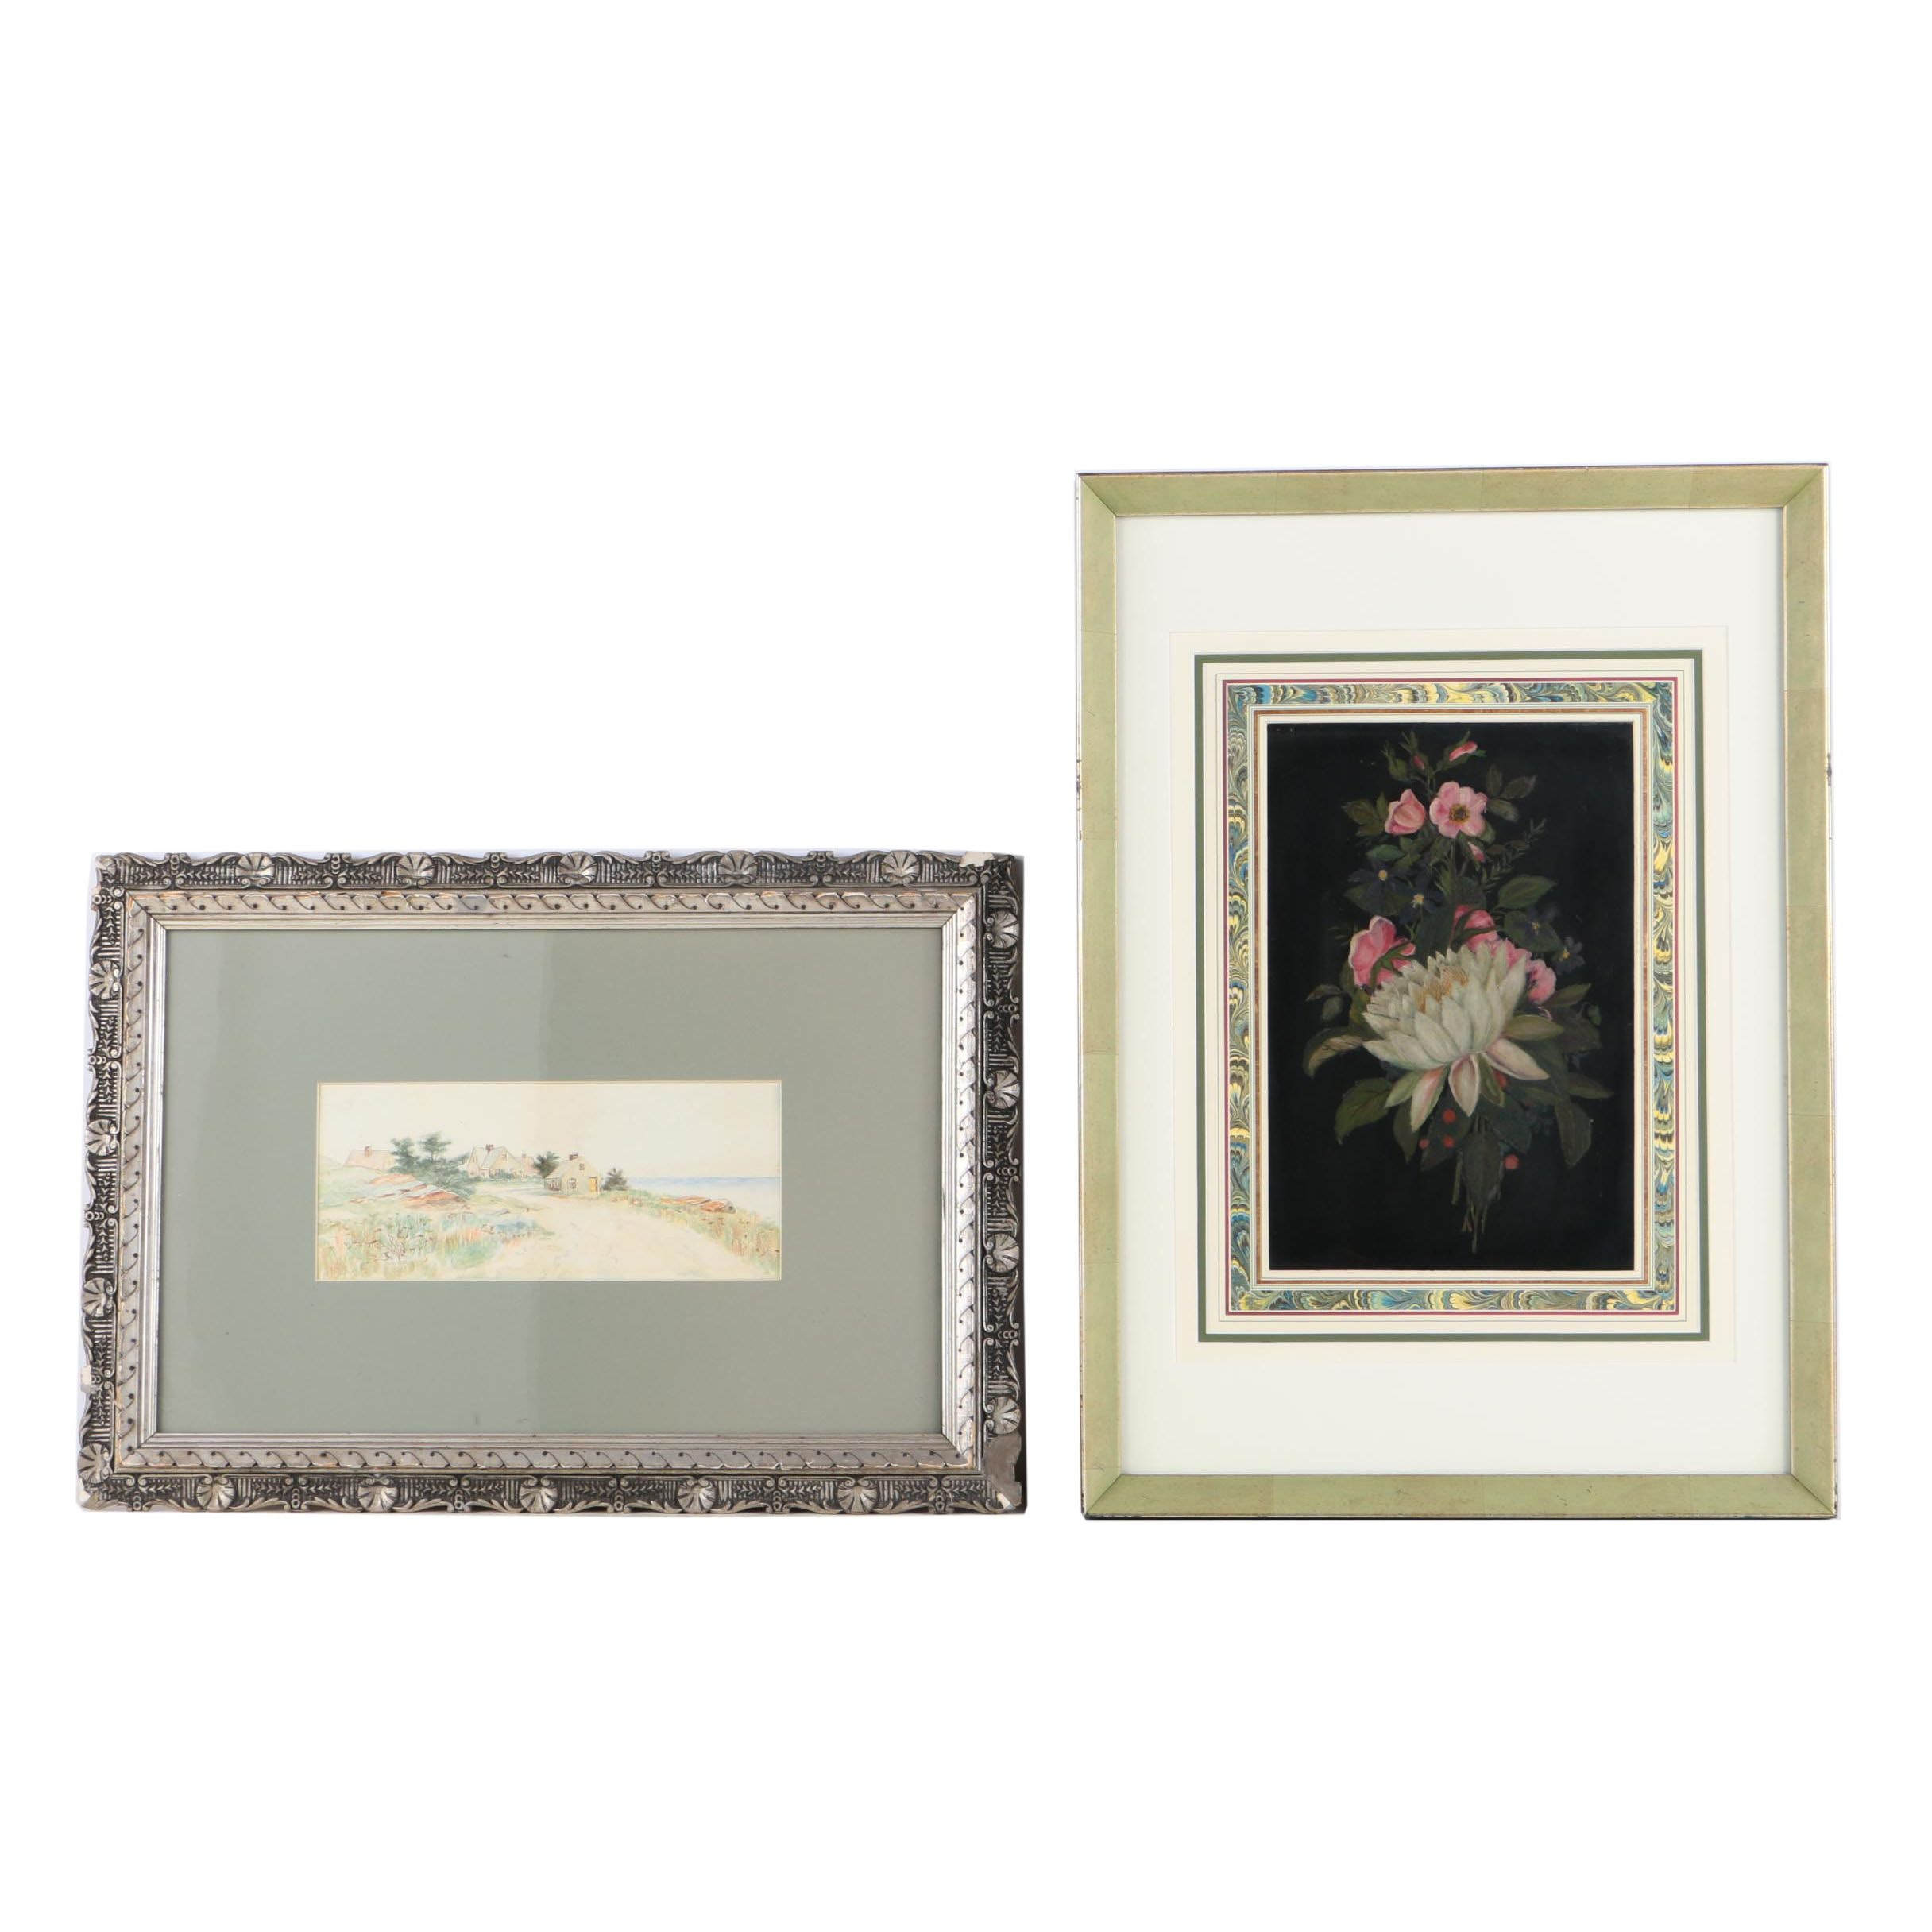 F.A. Fogg Watercolor Landscape with Oil Painting of Flowers on Metal Plate